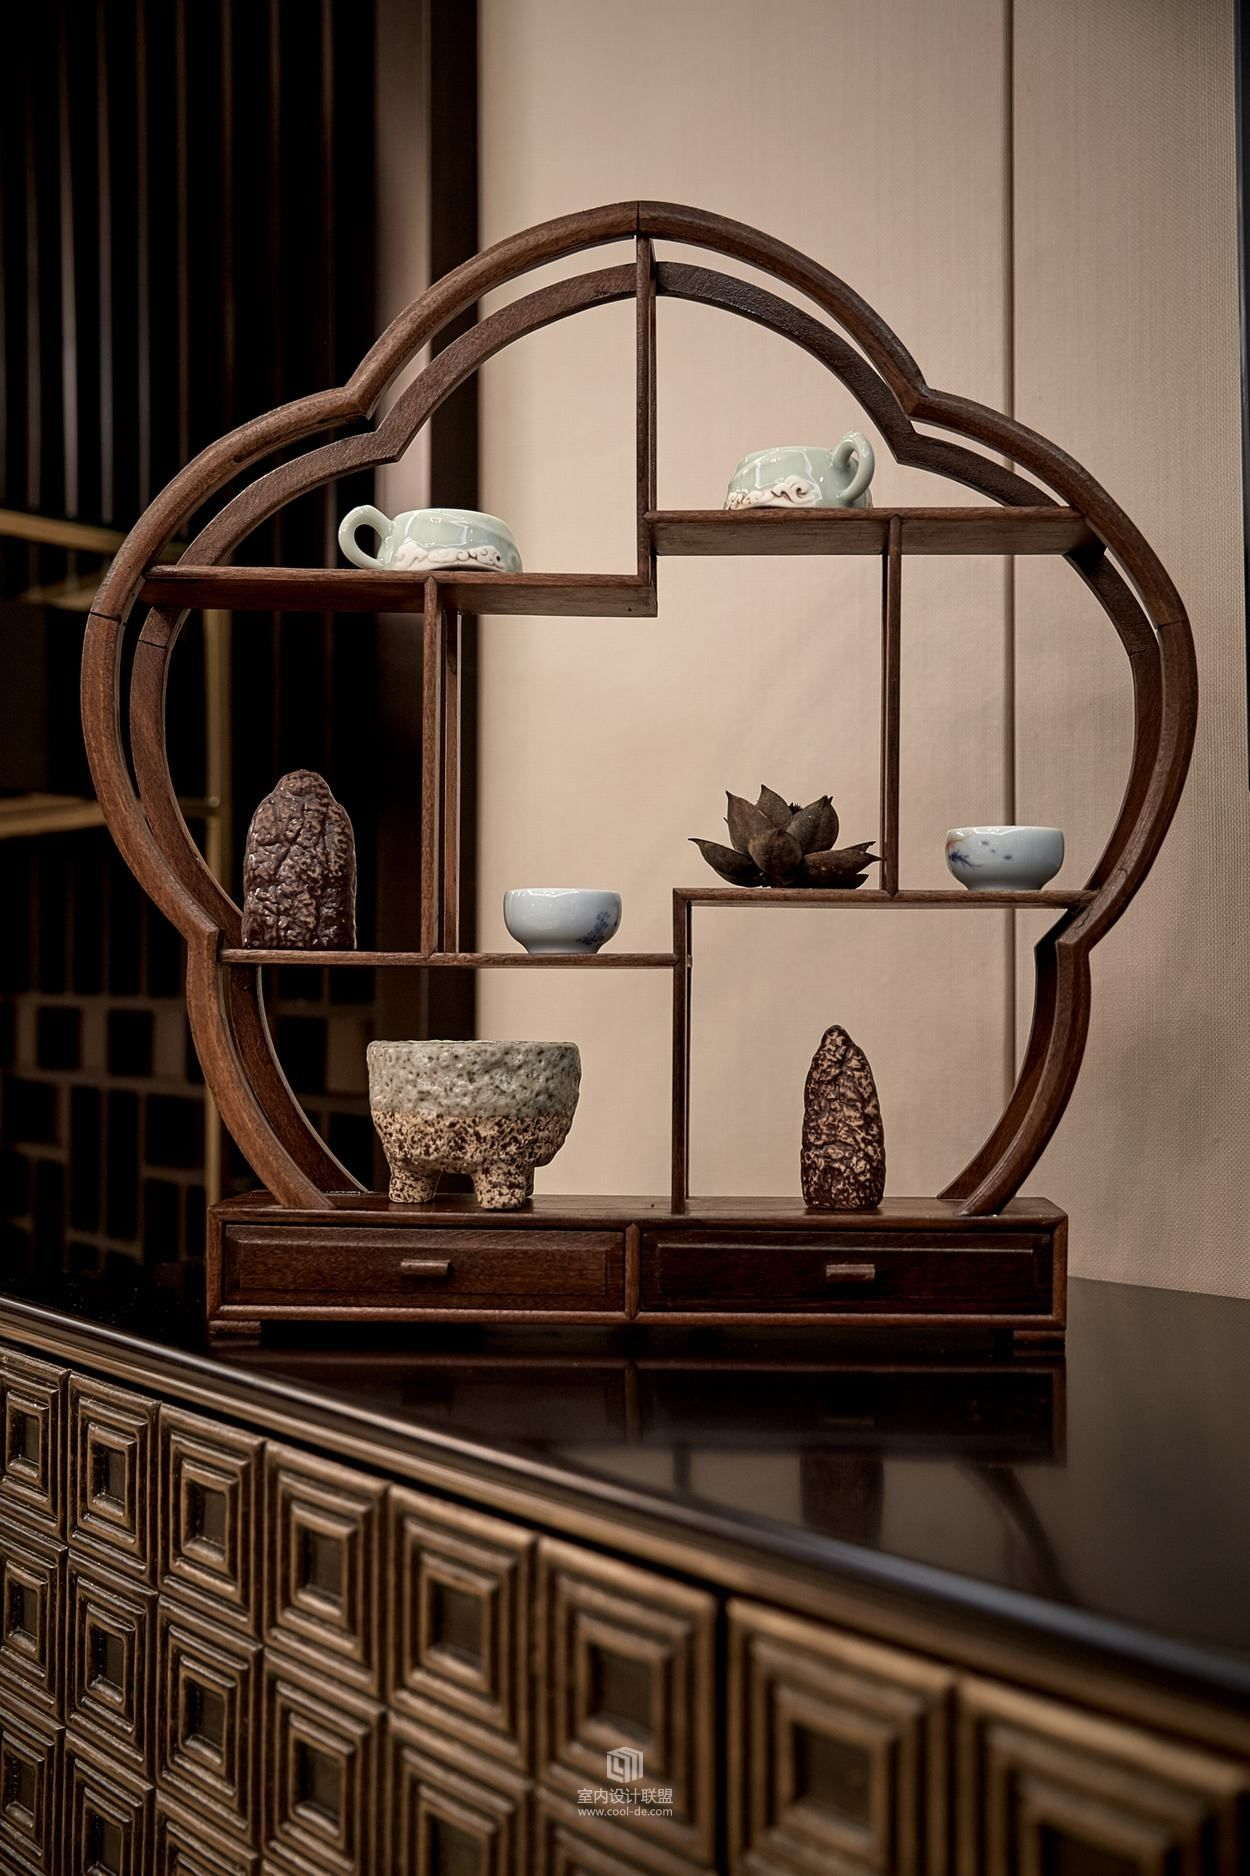 Sculpture Accessories Chinese Style Interior Asian Interior